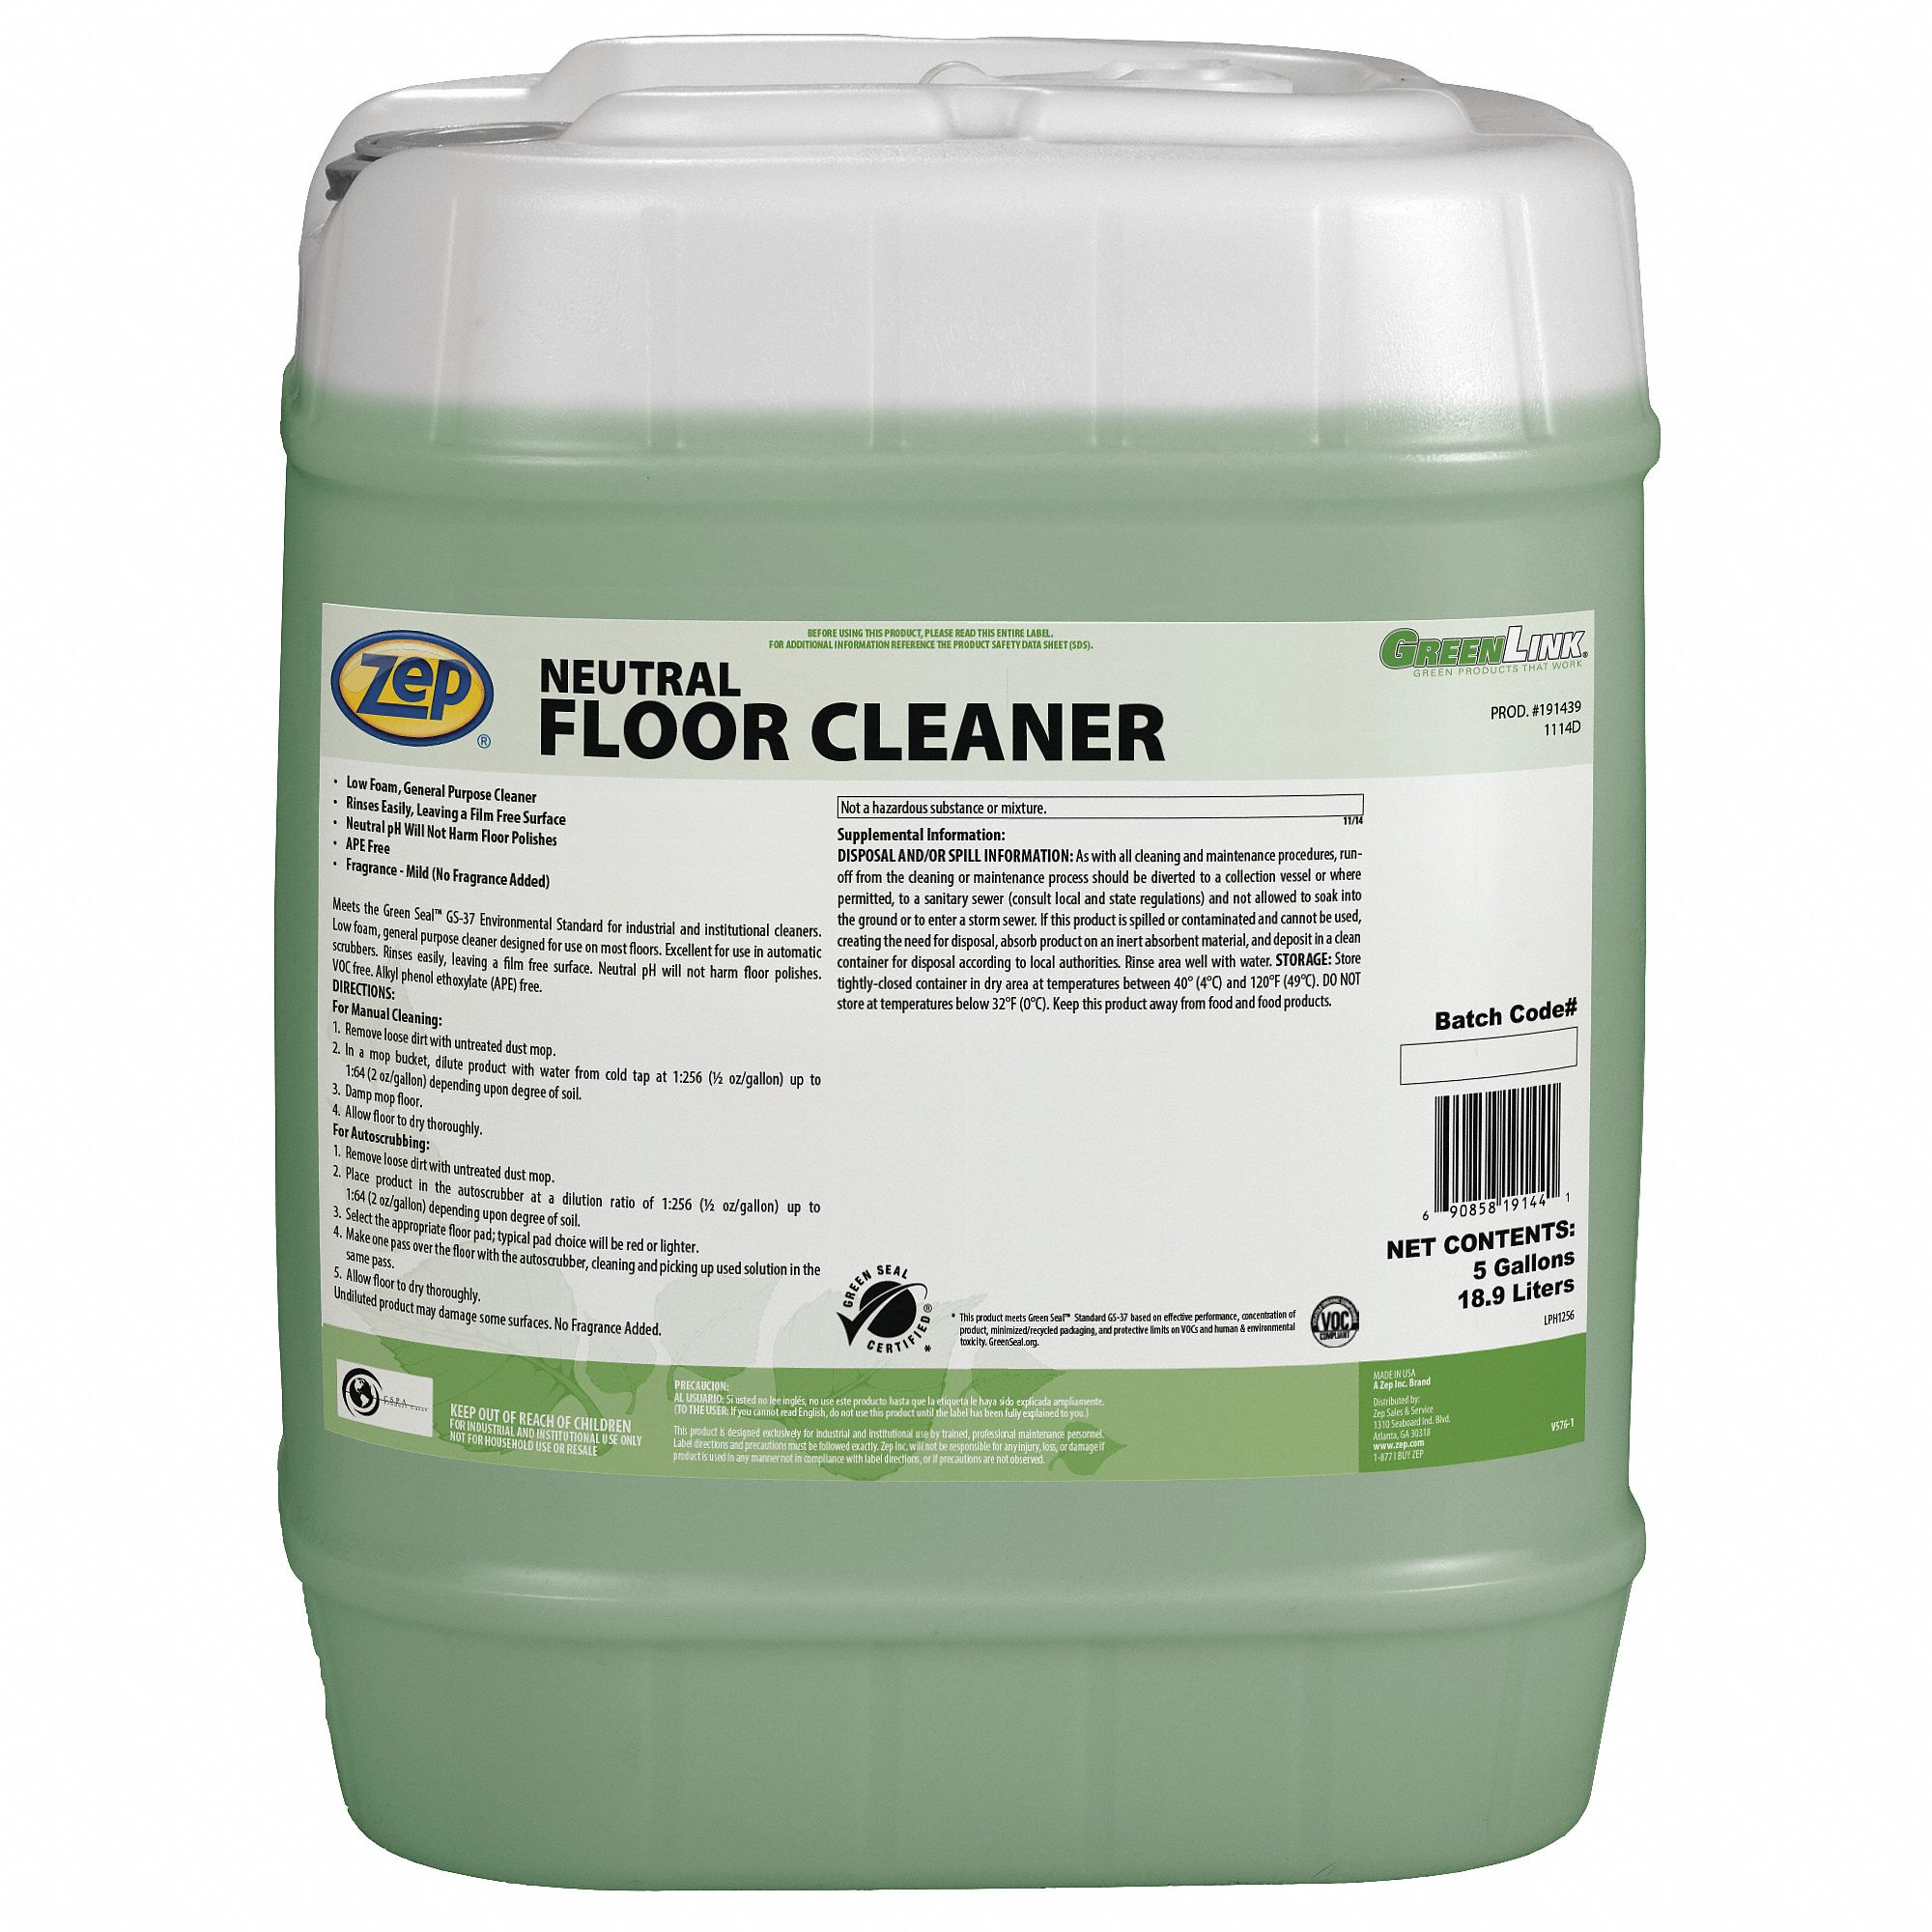 Zep Floor Cleaners And Maintainers Floor Cleaning Products Grainger Industrial Supply